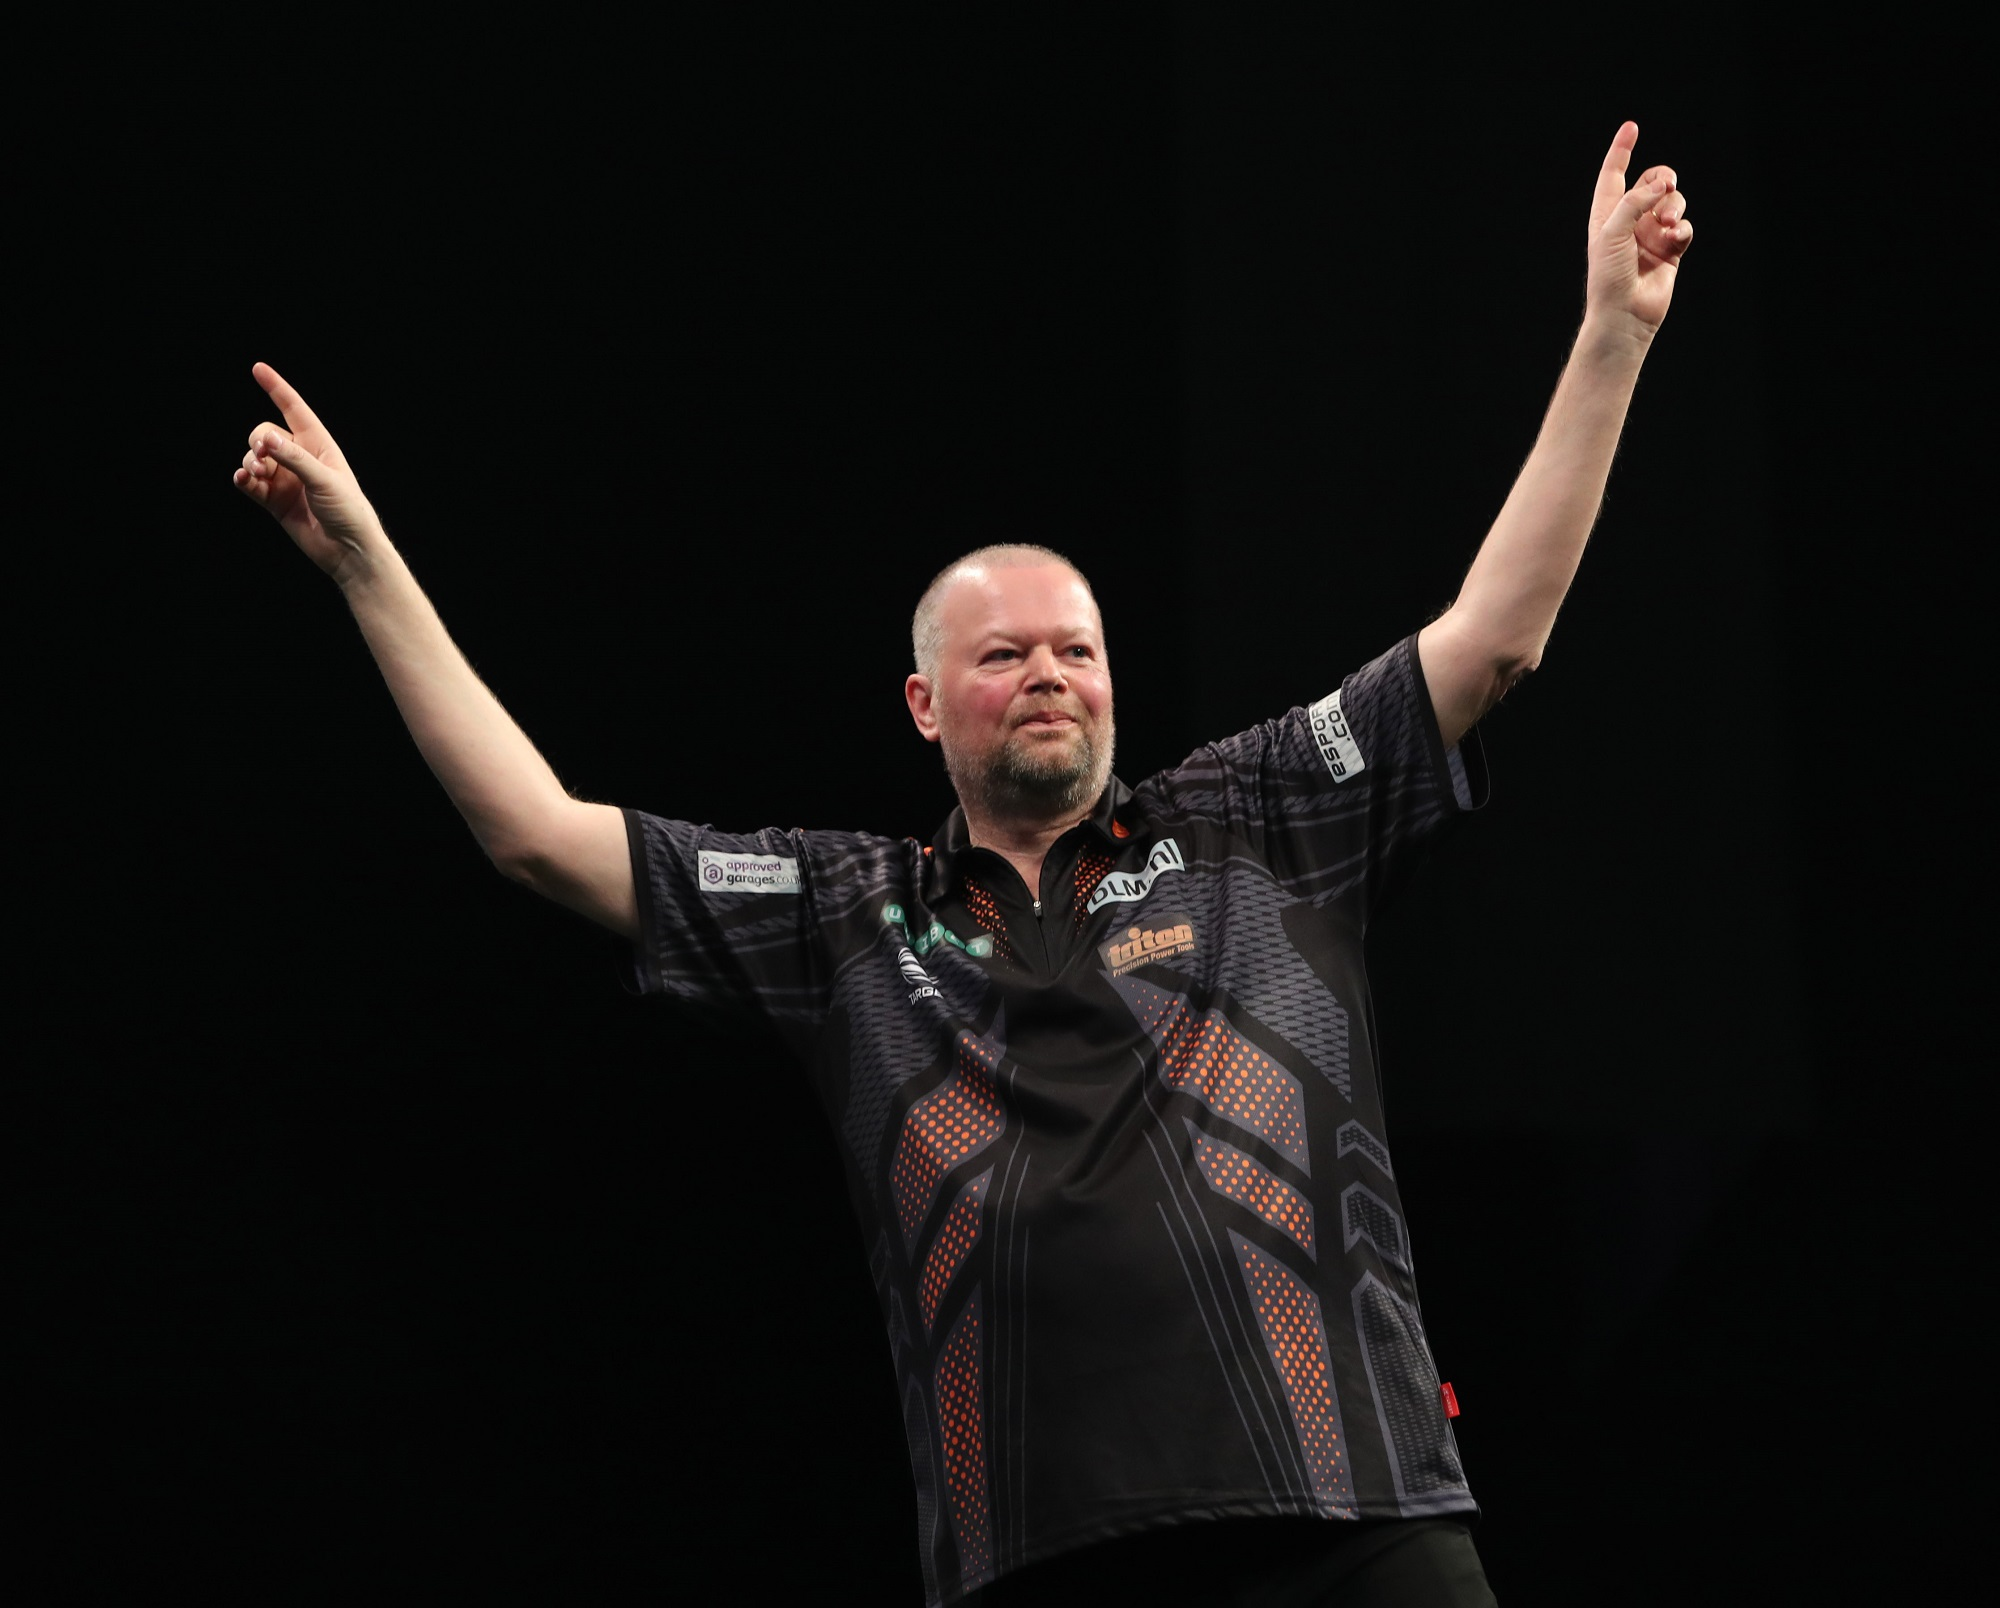 Now he's got through Q-School, what can we expect from Raymond van Barneveld?